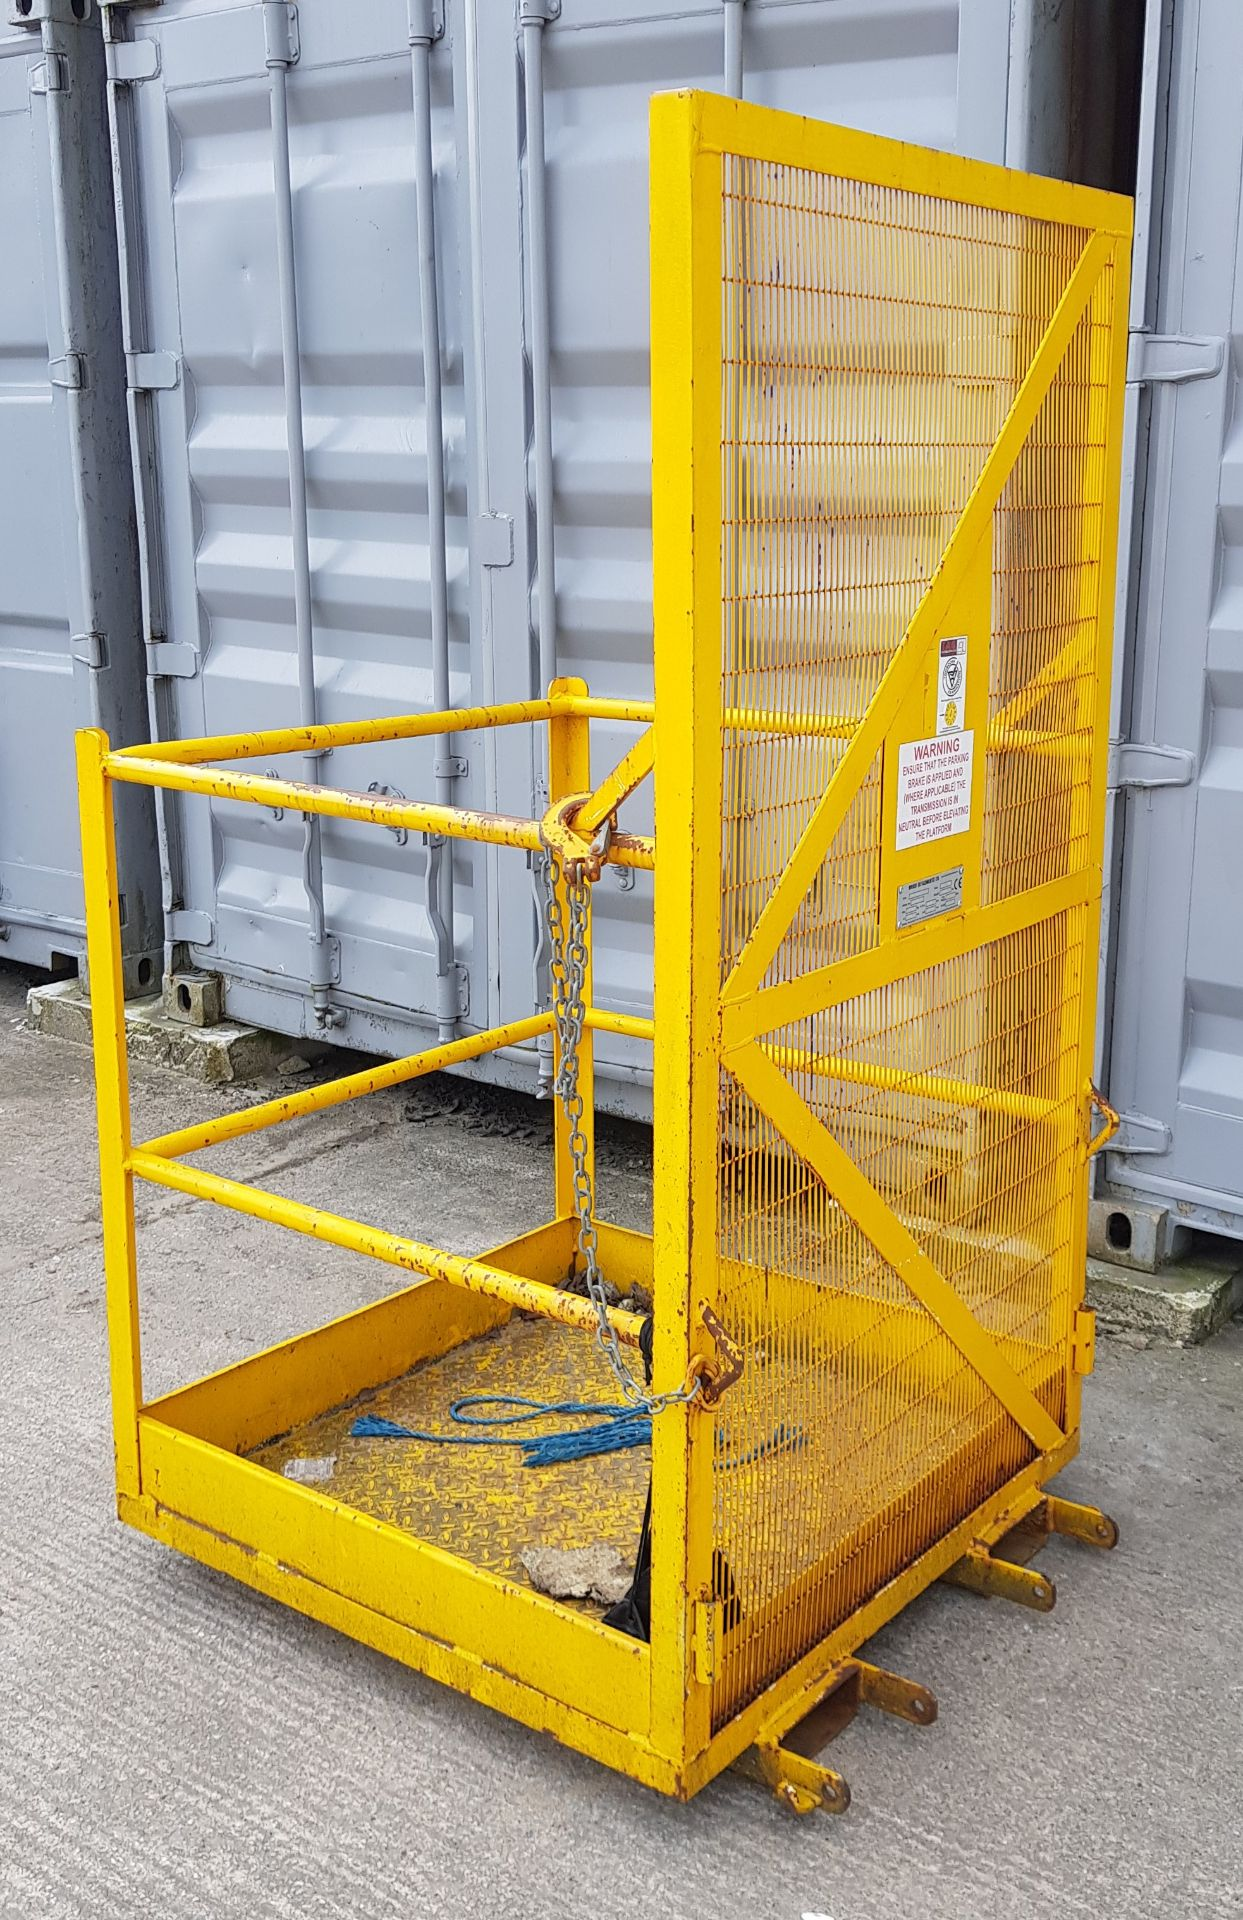 COMMERCIAL PEDESTRIAN CAGE - Image 2 of 3